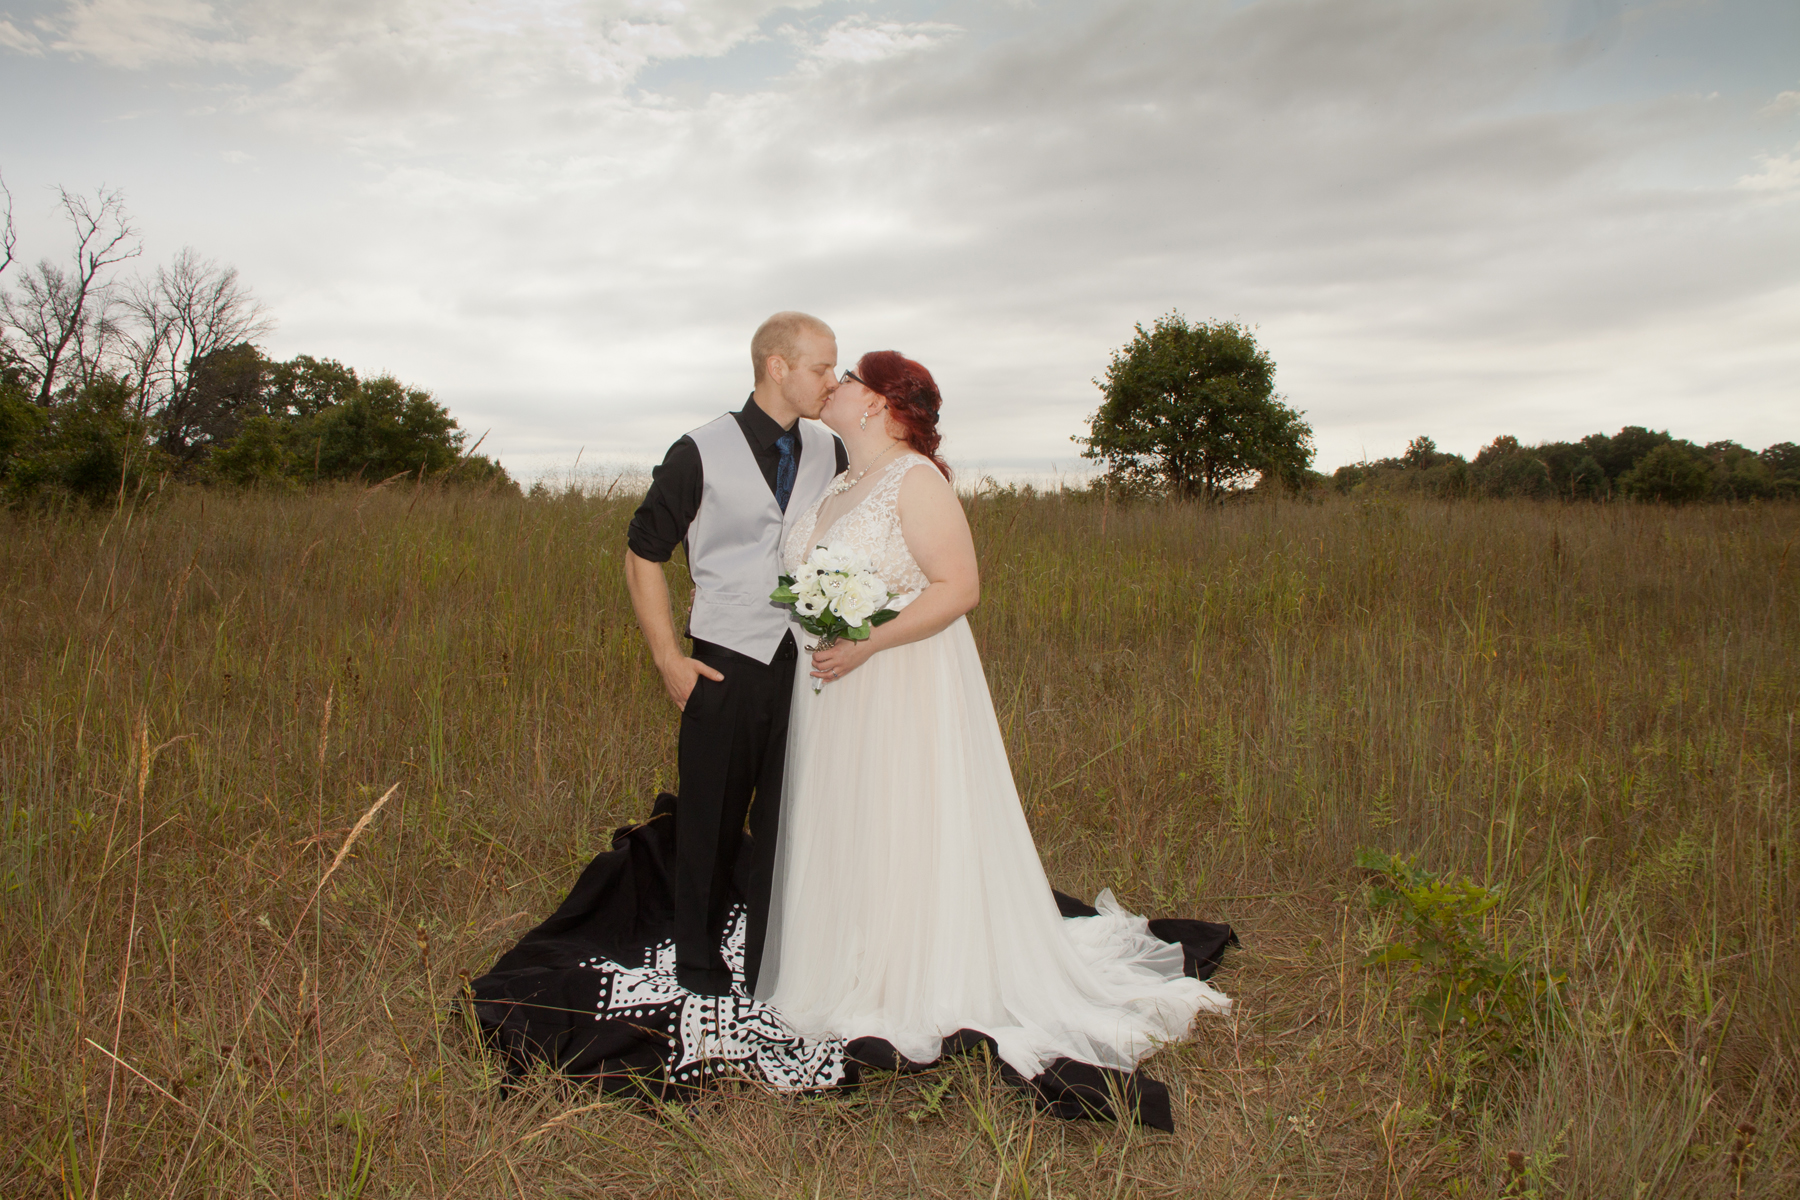 Ashley and Jon had a beautiful outdoor wedding. The Sherburne County Wildlife Refuge provided an amazing backdrop for this couple